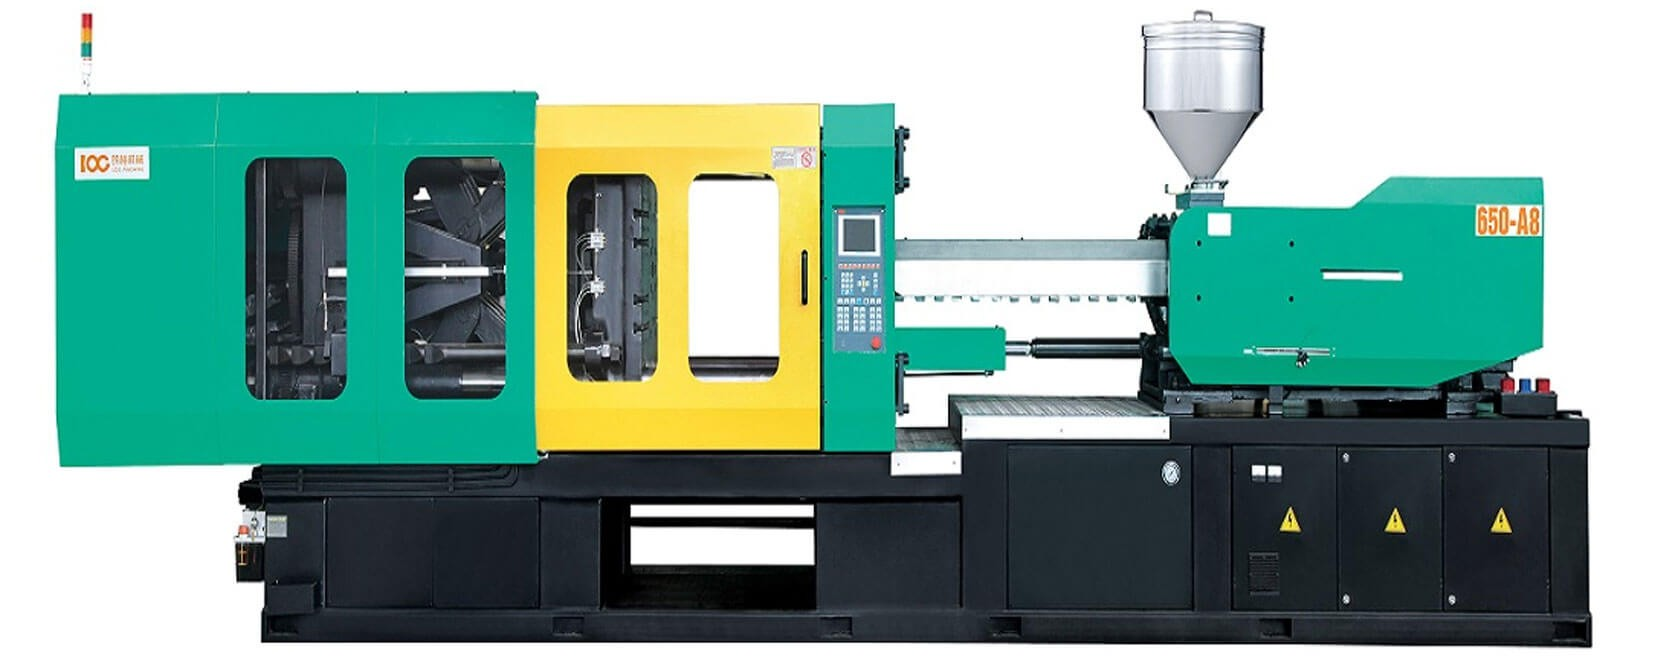 Injection Molding Manufacturing Technology